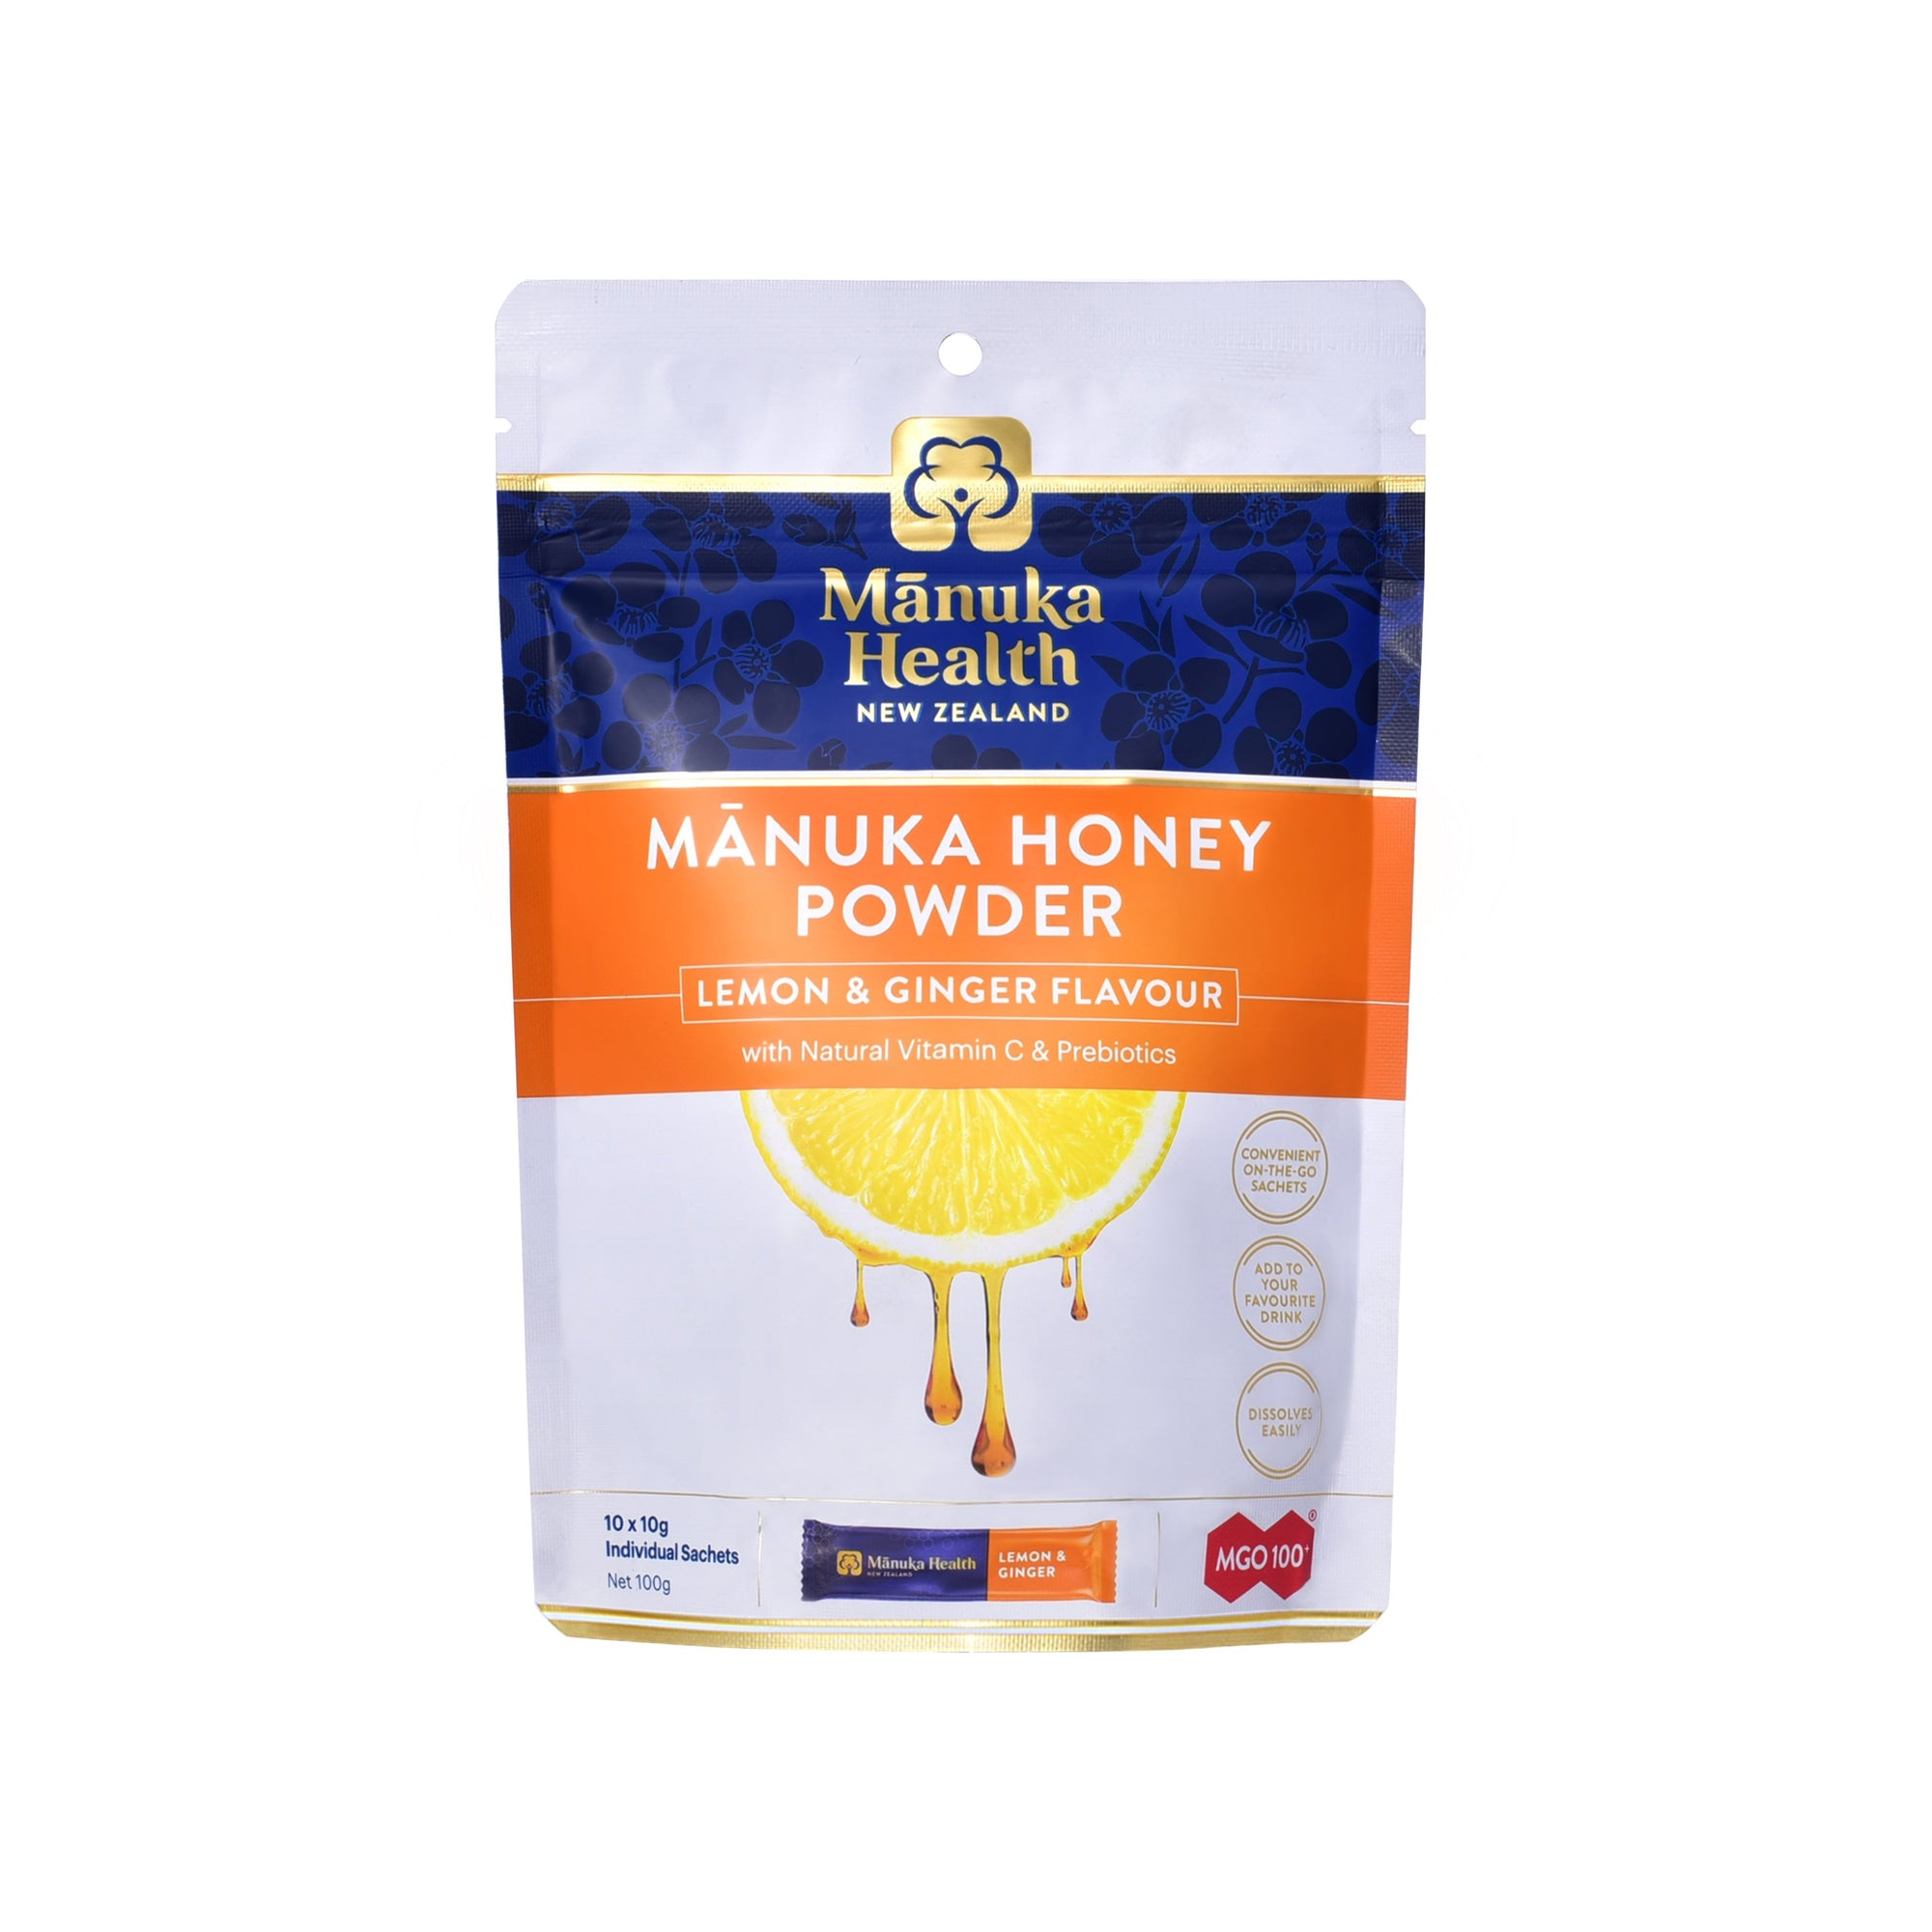 Manuka Health Power - Lemon & Ginger Flavour - Health & Supplements | Manuka Health